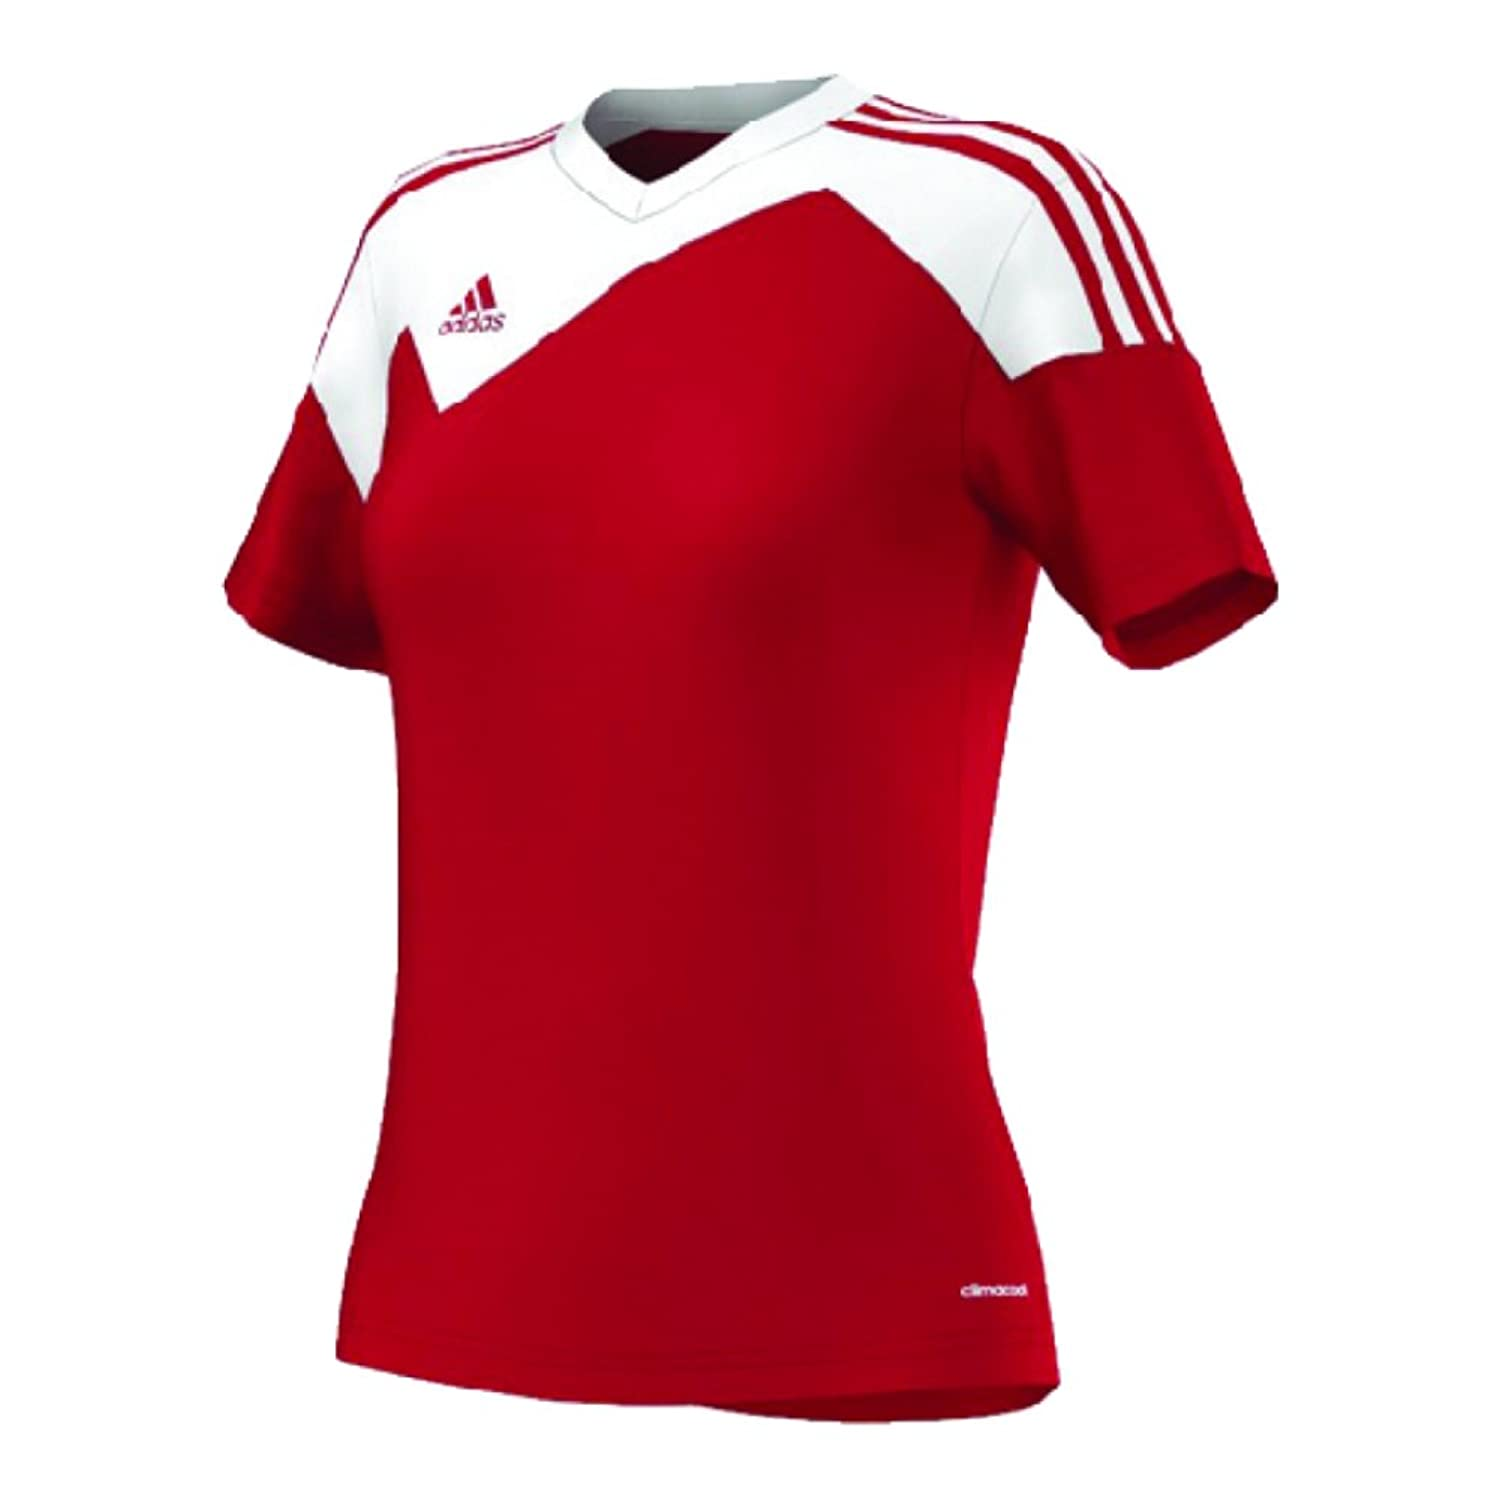 Adidas Toque 13 Womens Soccer Jersey